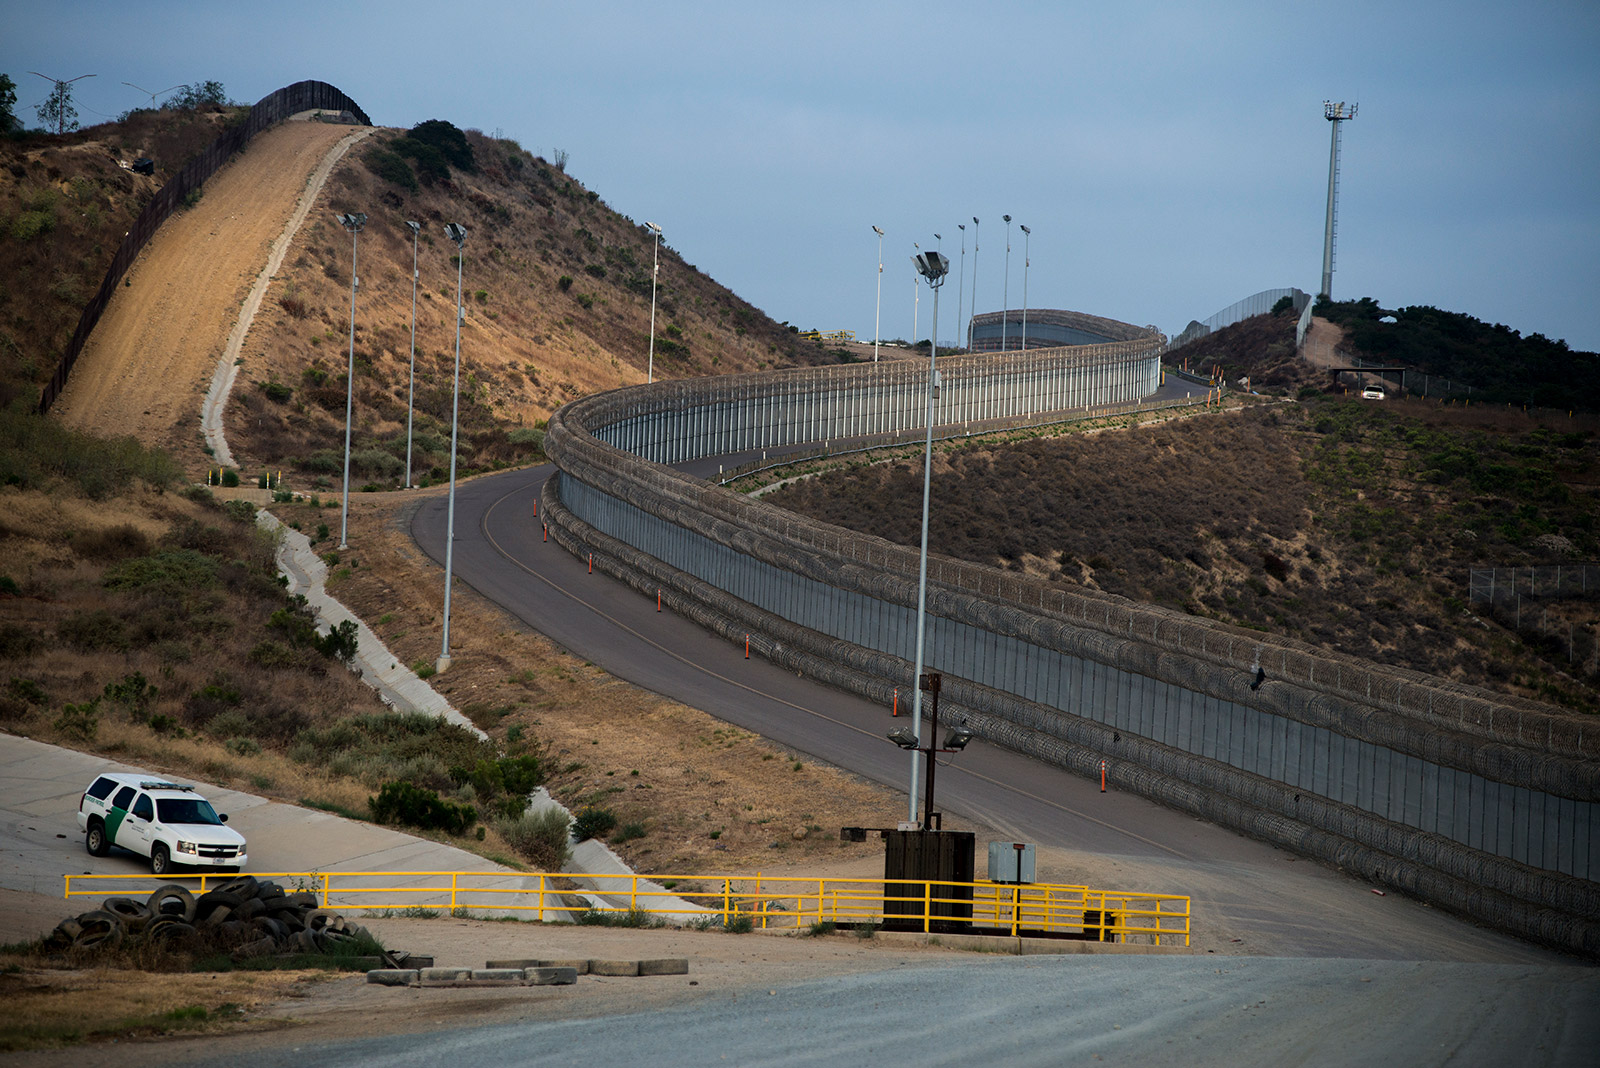 """A section of secondary fencing, covered with concertina wire at the base and top of the structure, snakes along a winding road near the San Ysidro Port of Entry in San Diego on Aug. 16, 2017. Also shown is a line of primary fencing made of corrugated steel, left, a Border Patrol vehicle along a drainage area and a tower with """"virtual fencing"""" technology at the top of the hill. <em>(Brandon Quester/inewsource)</em>"""